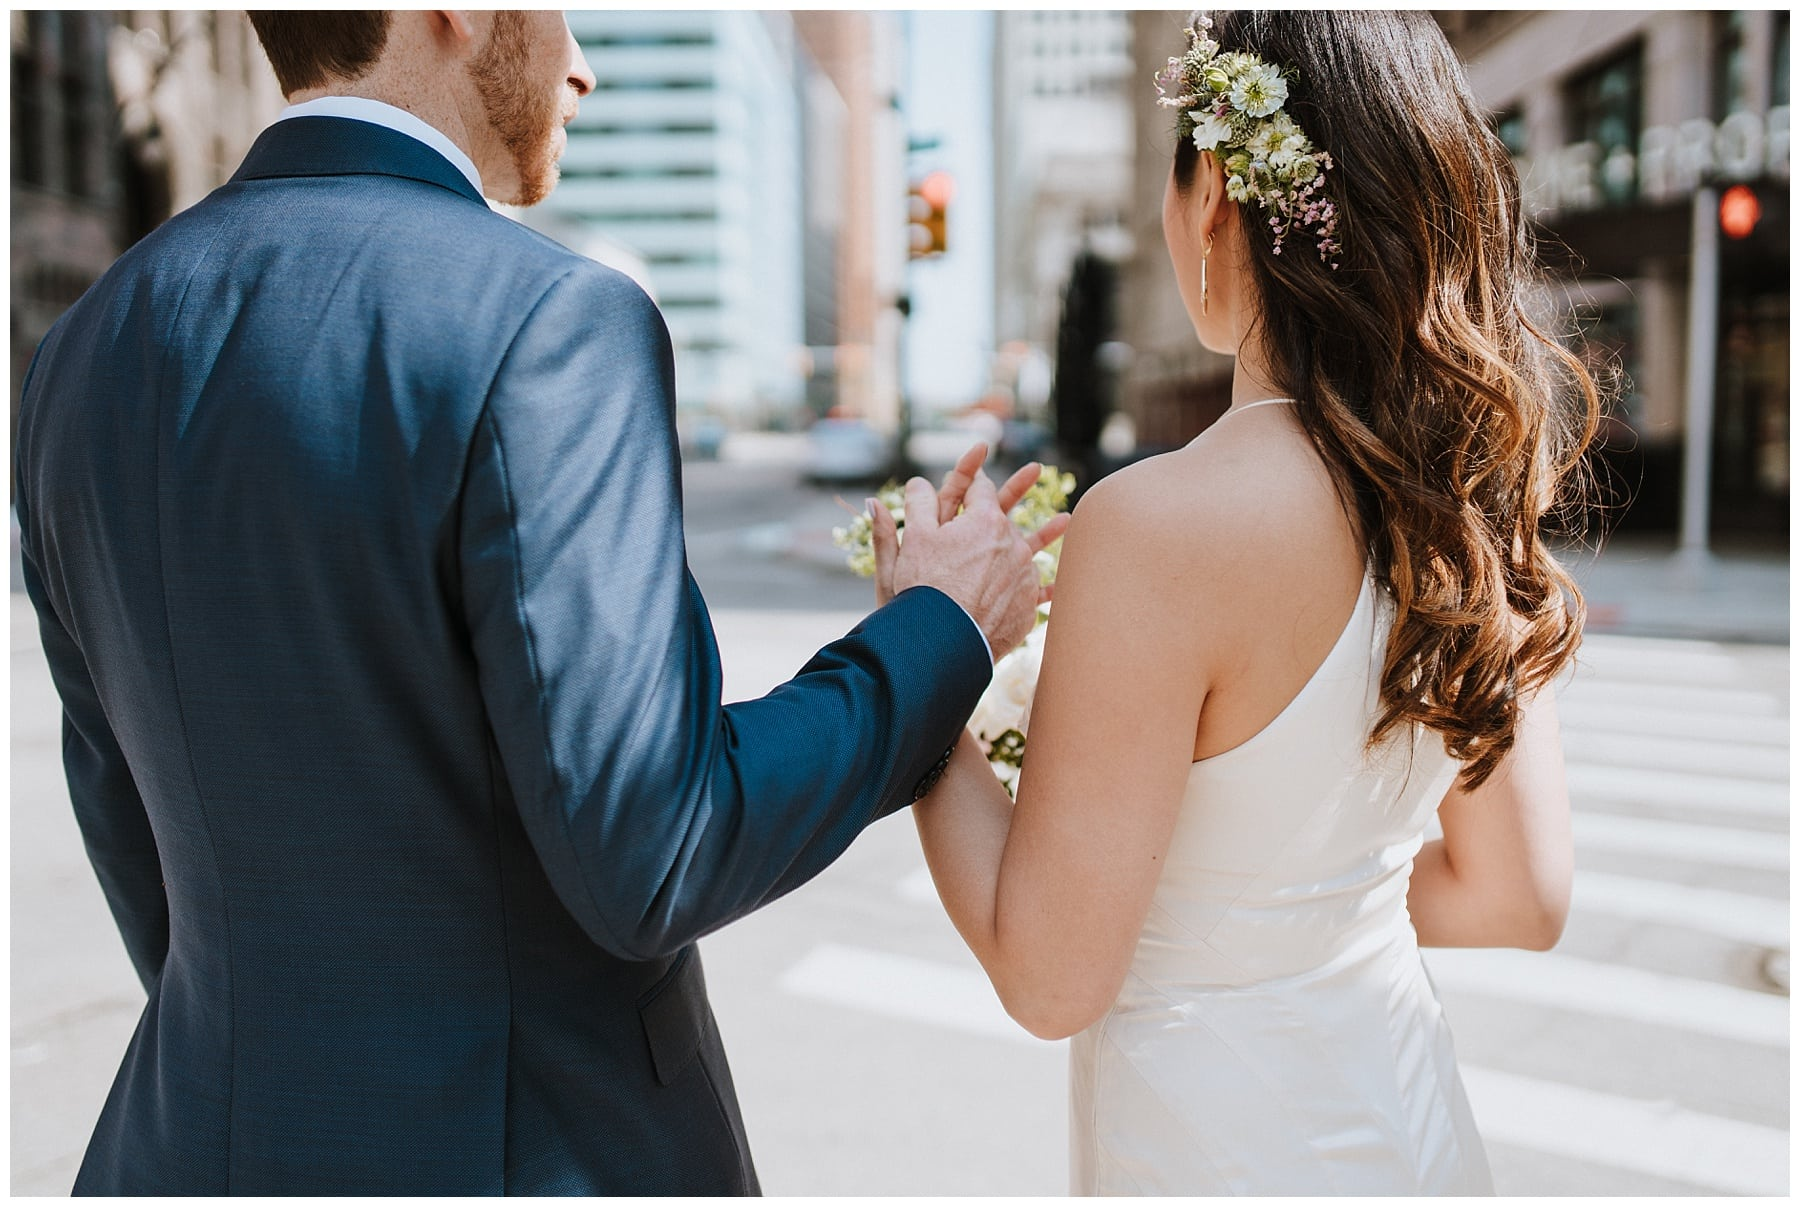 A Quick Guide to Eloping: What is an Elopement and Why They are Amazing